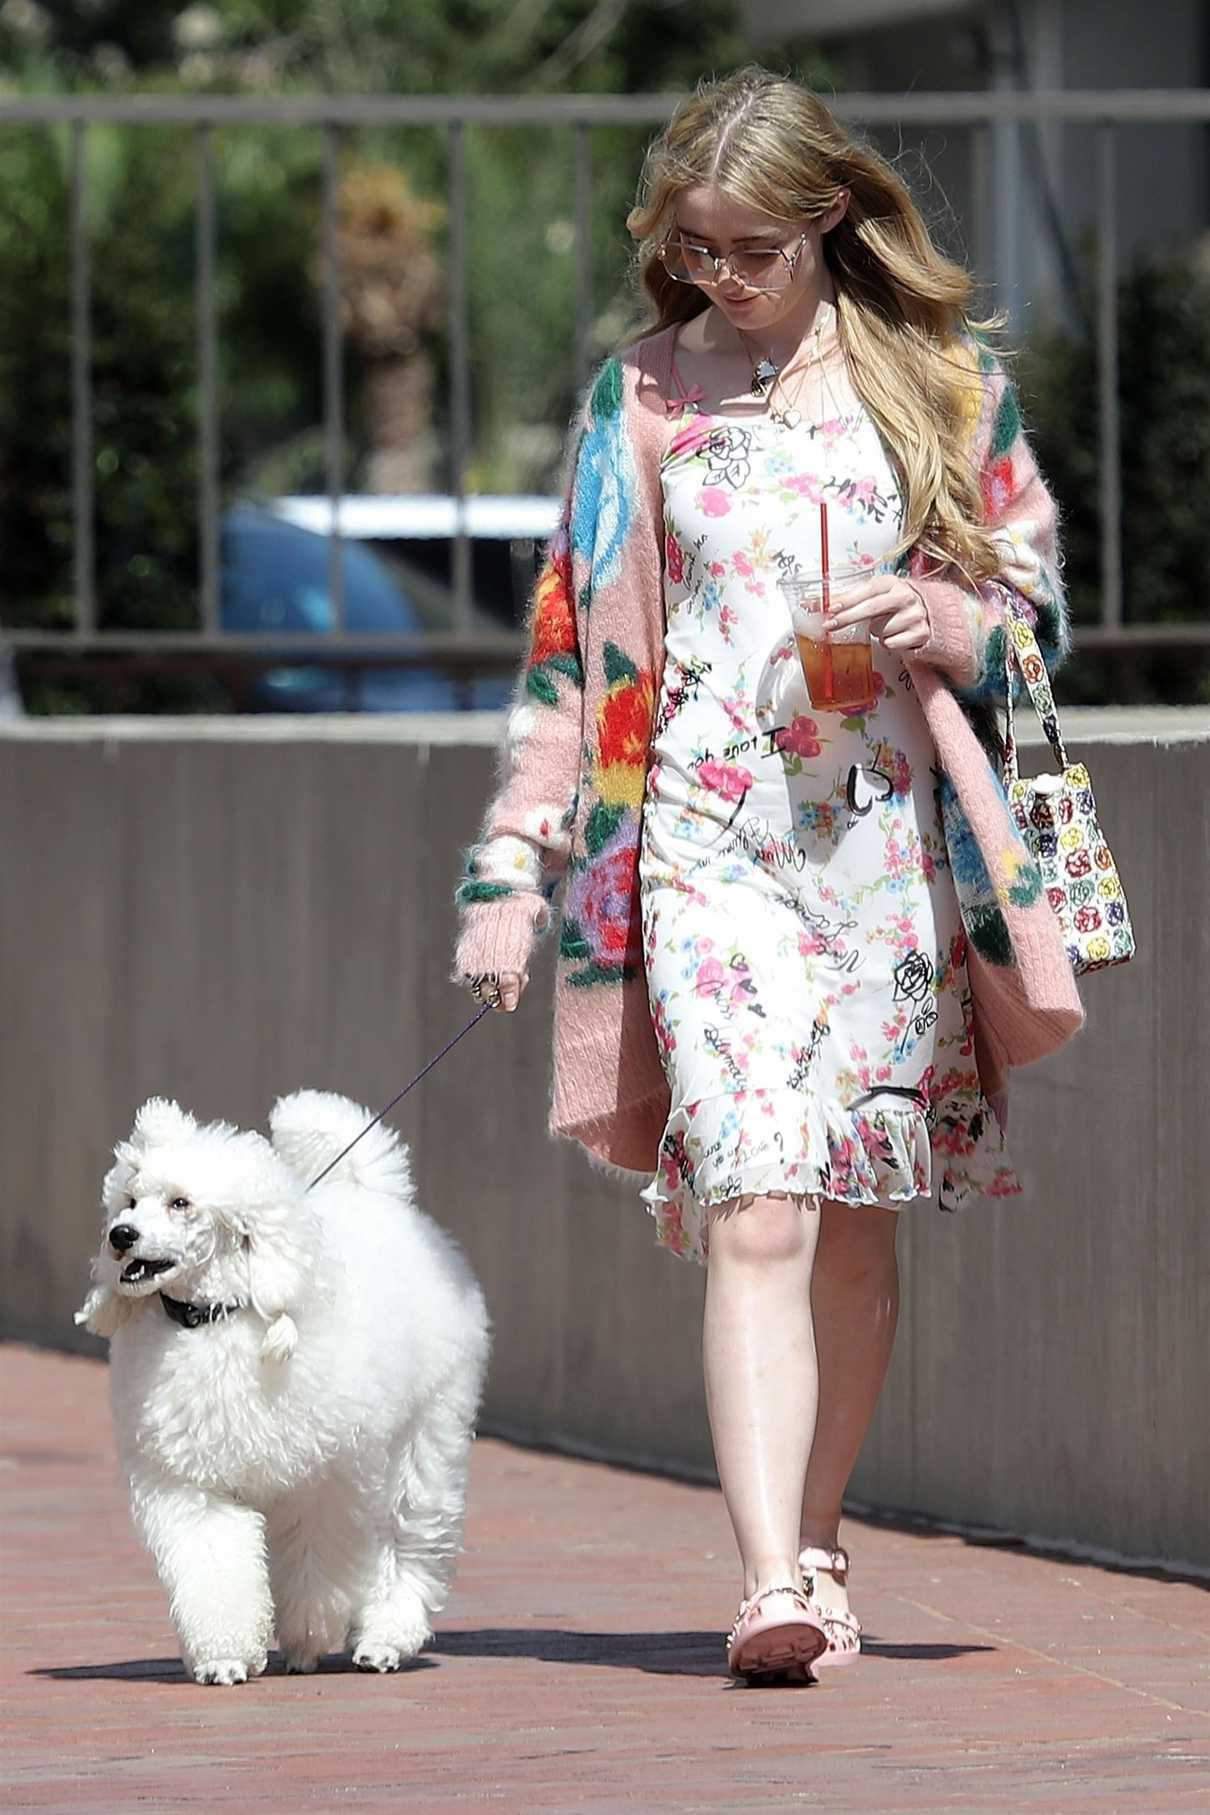 Kathryn Newton Wears a Summer Floral Dress as She Walks Her Dog in Beverly Hills 07/17/2018-4